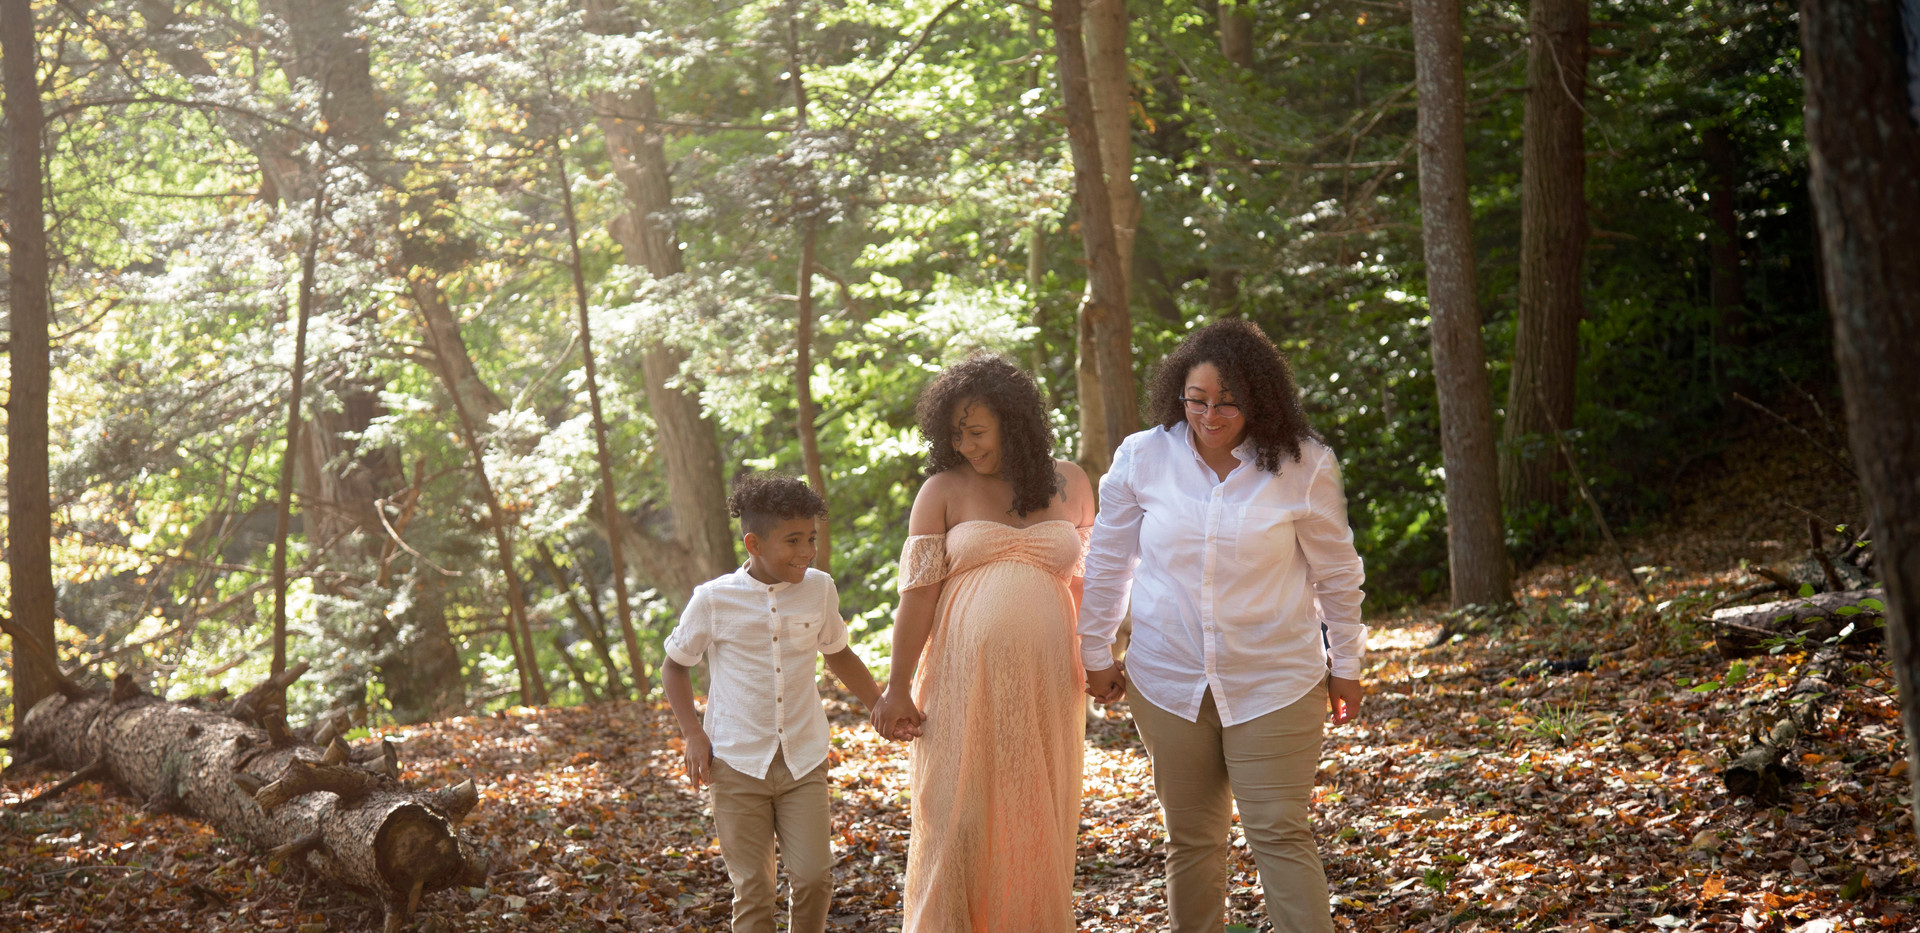 Maternity Photography CT: SBS Photography  Connecticut